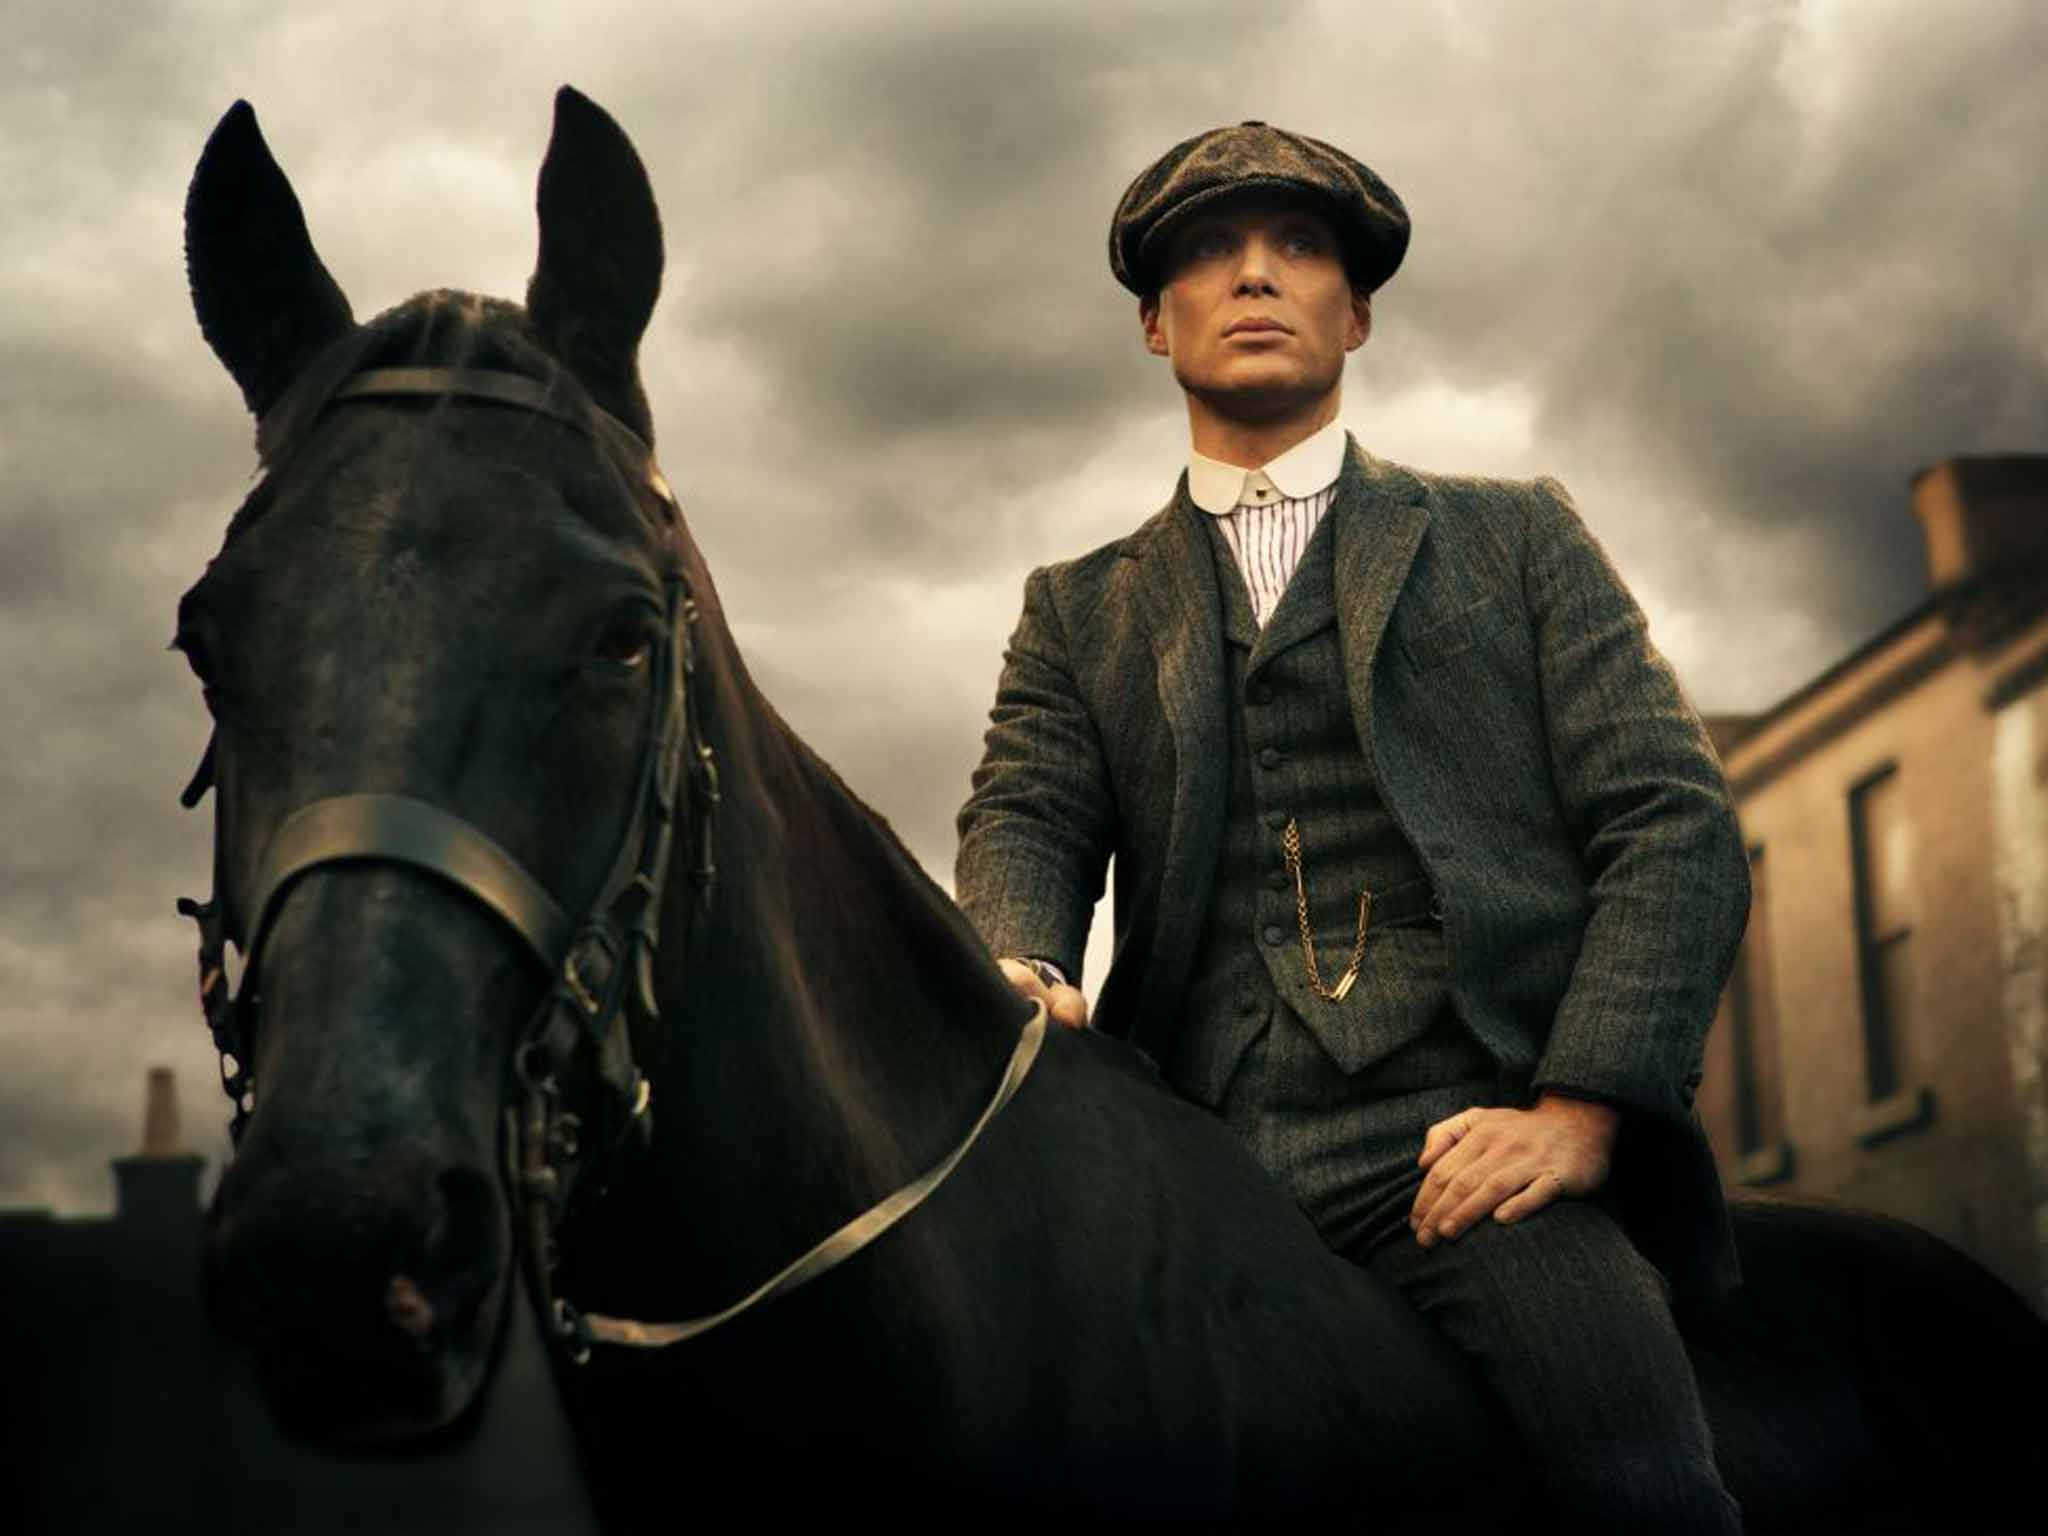 Cillian Murphy as Tom Shelby in BBC show, Peaky Blinders